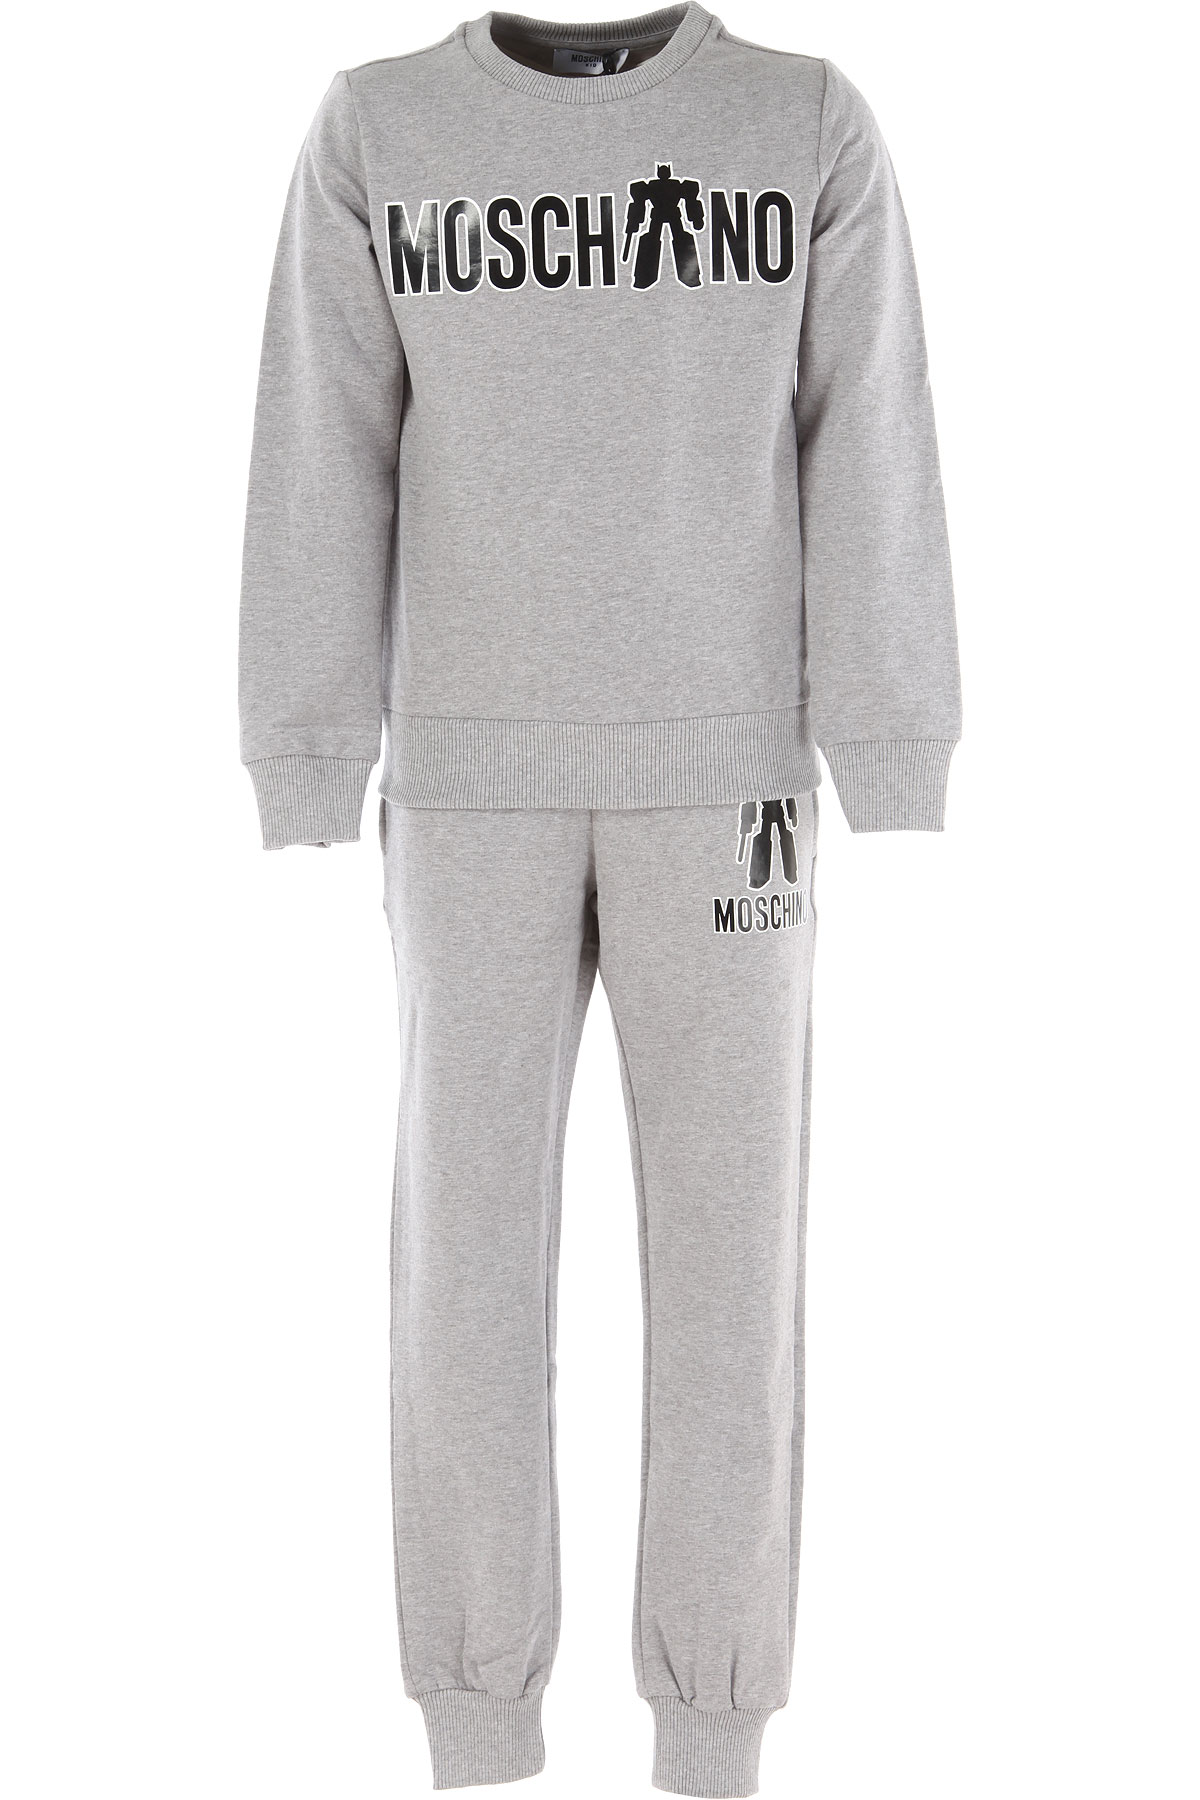 Image of Moschino Sets On Sale in Outlet, Grey, Cotton, 2017, 6Y 8Y